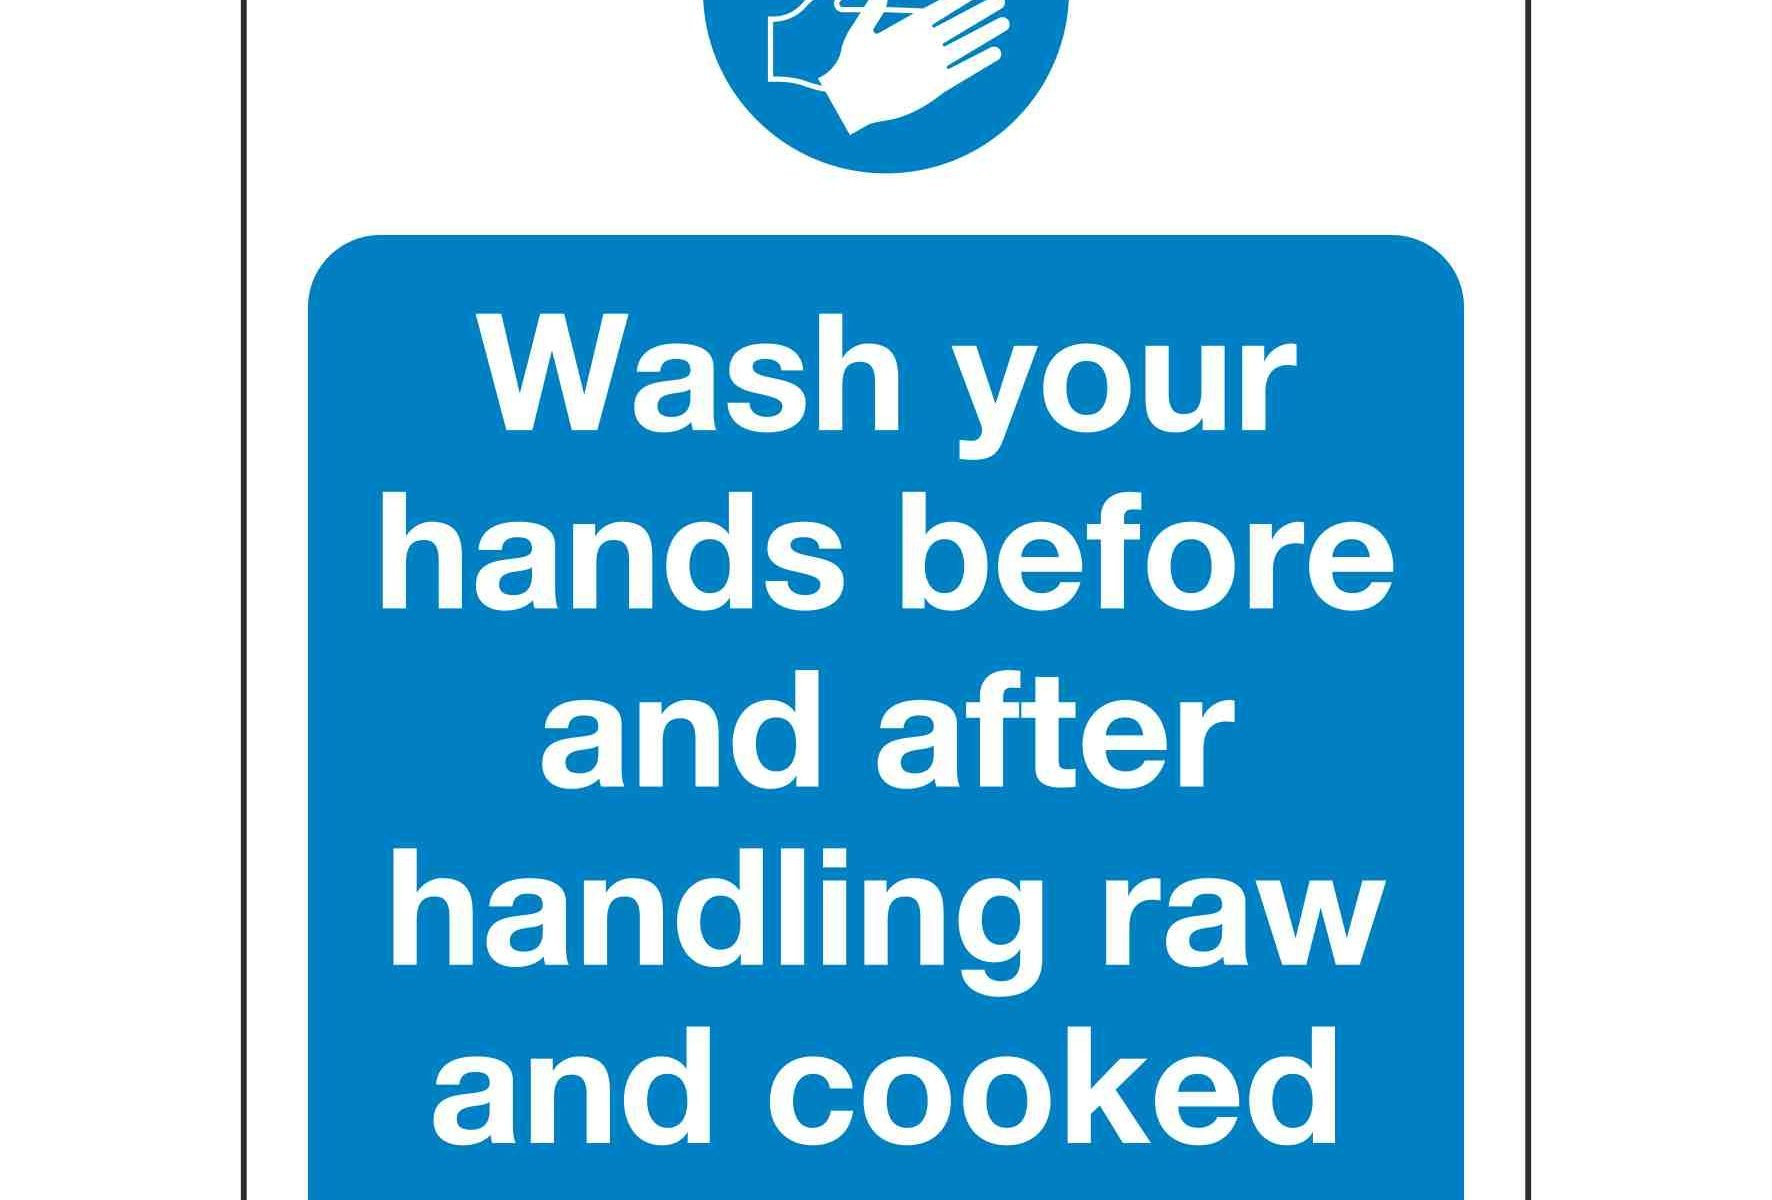 Wash your hands before and after handling raw and cooked meat